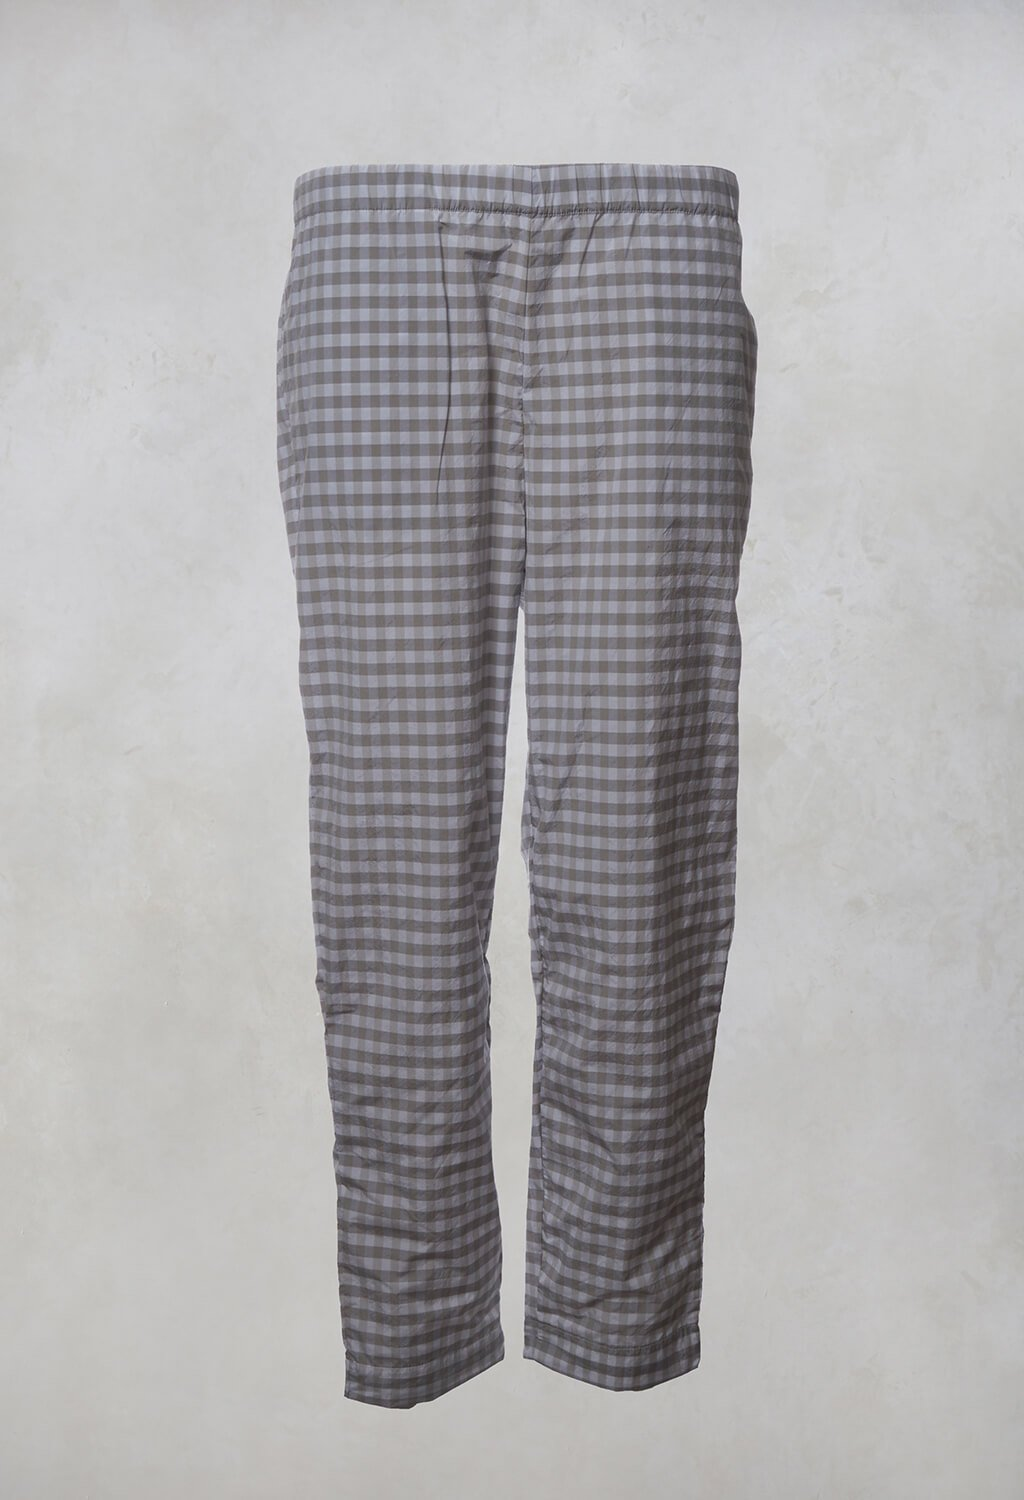 Raro Quadro Trousers in Cloud